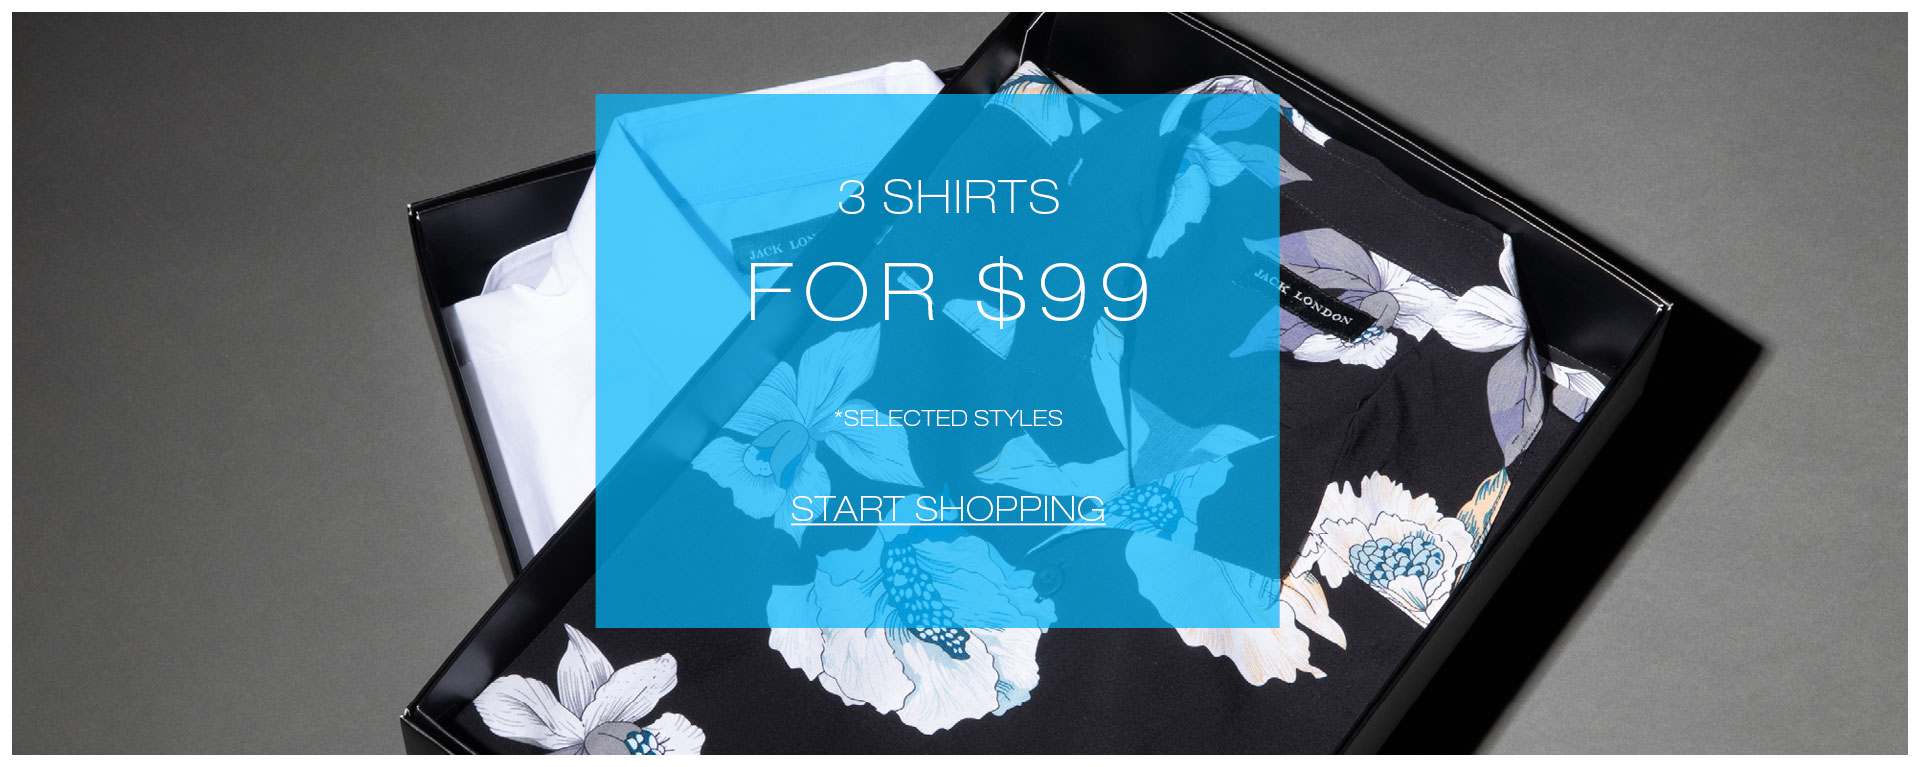 3 shirts for $99